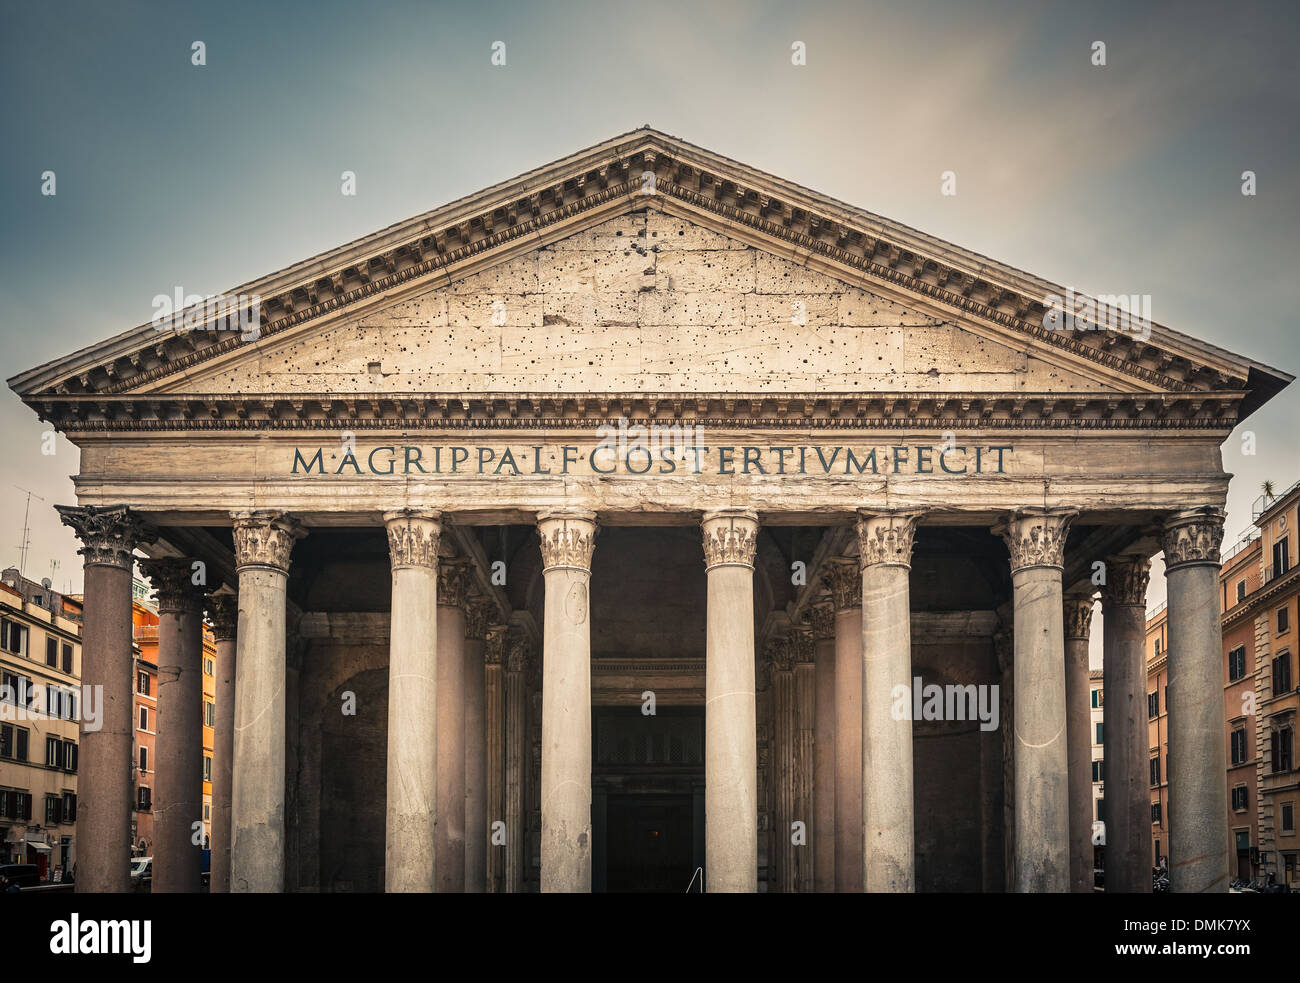 Pantheon in Rome, Italy - Stock Image